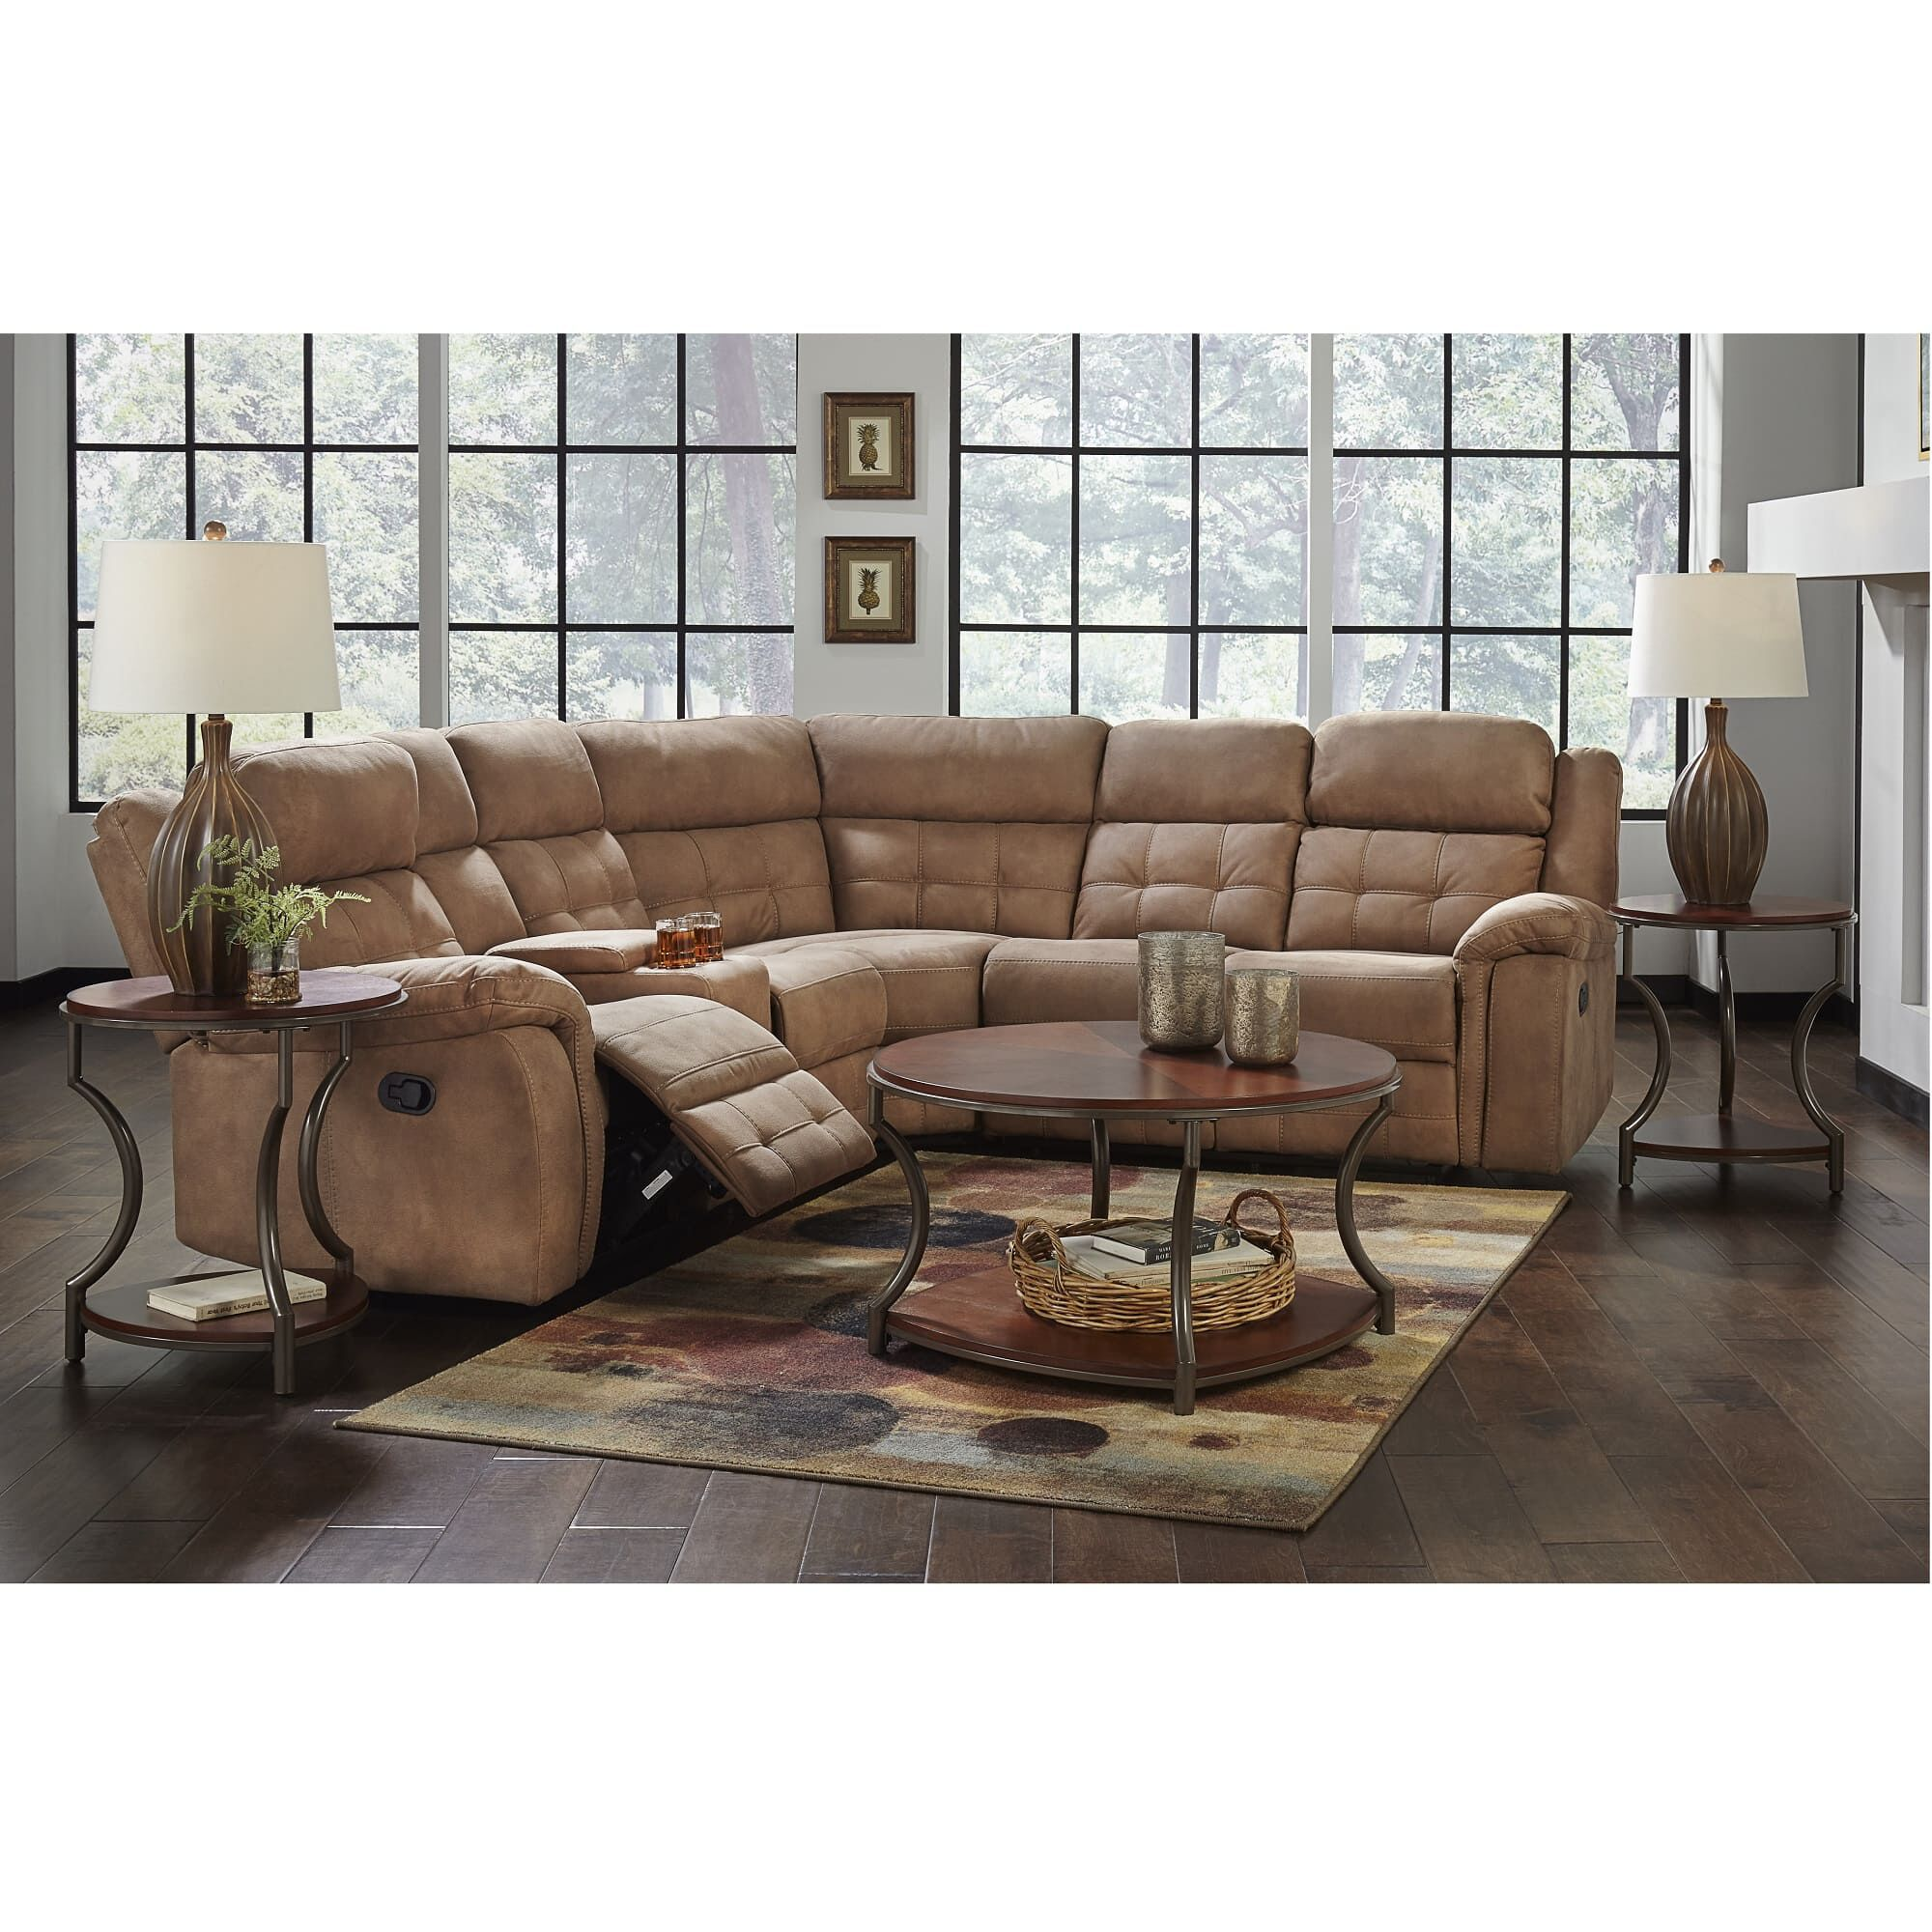 affordable modern living room sets cheap seating rent to own furniture aaron s 3 piece cobalt reclining sectional collection